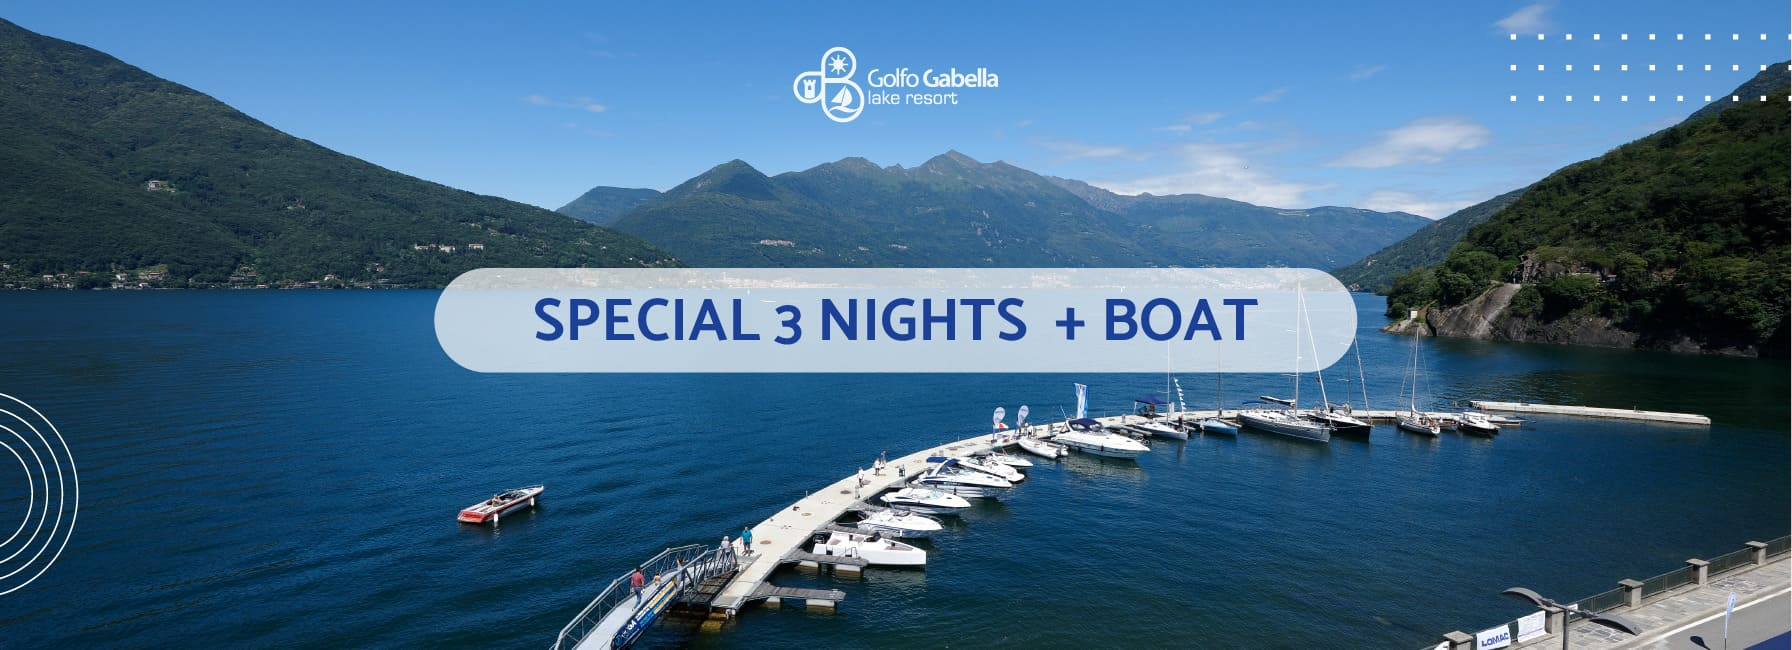 Holidays on Lake Maggiore - 3 nights promotion with free boat use